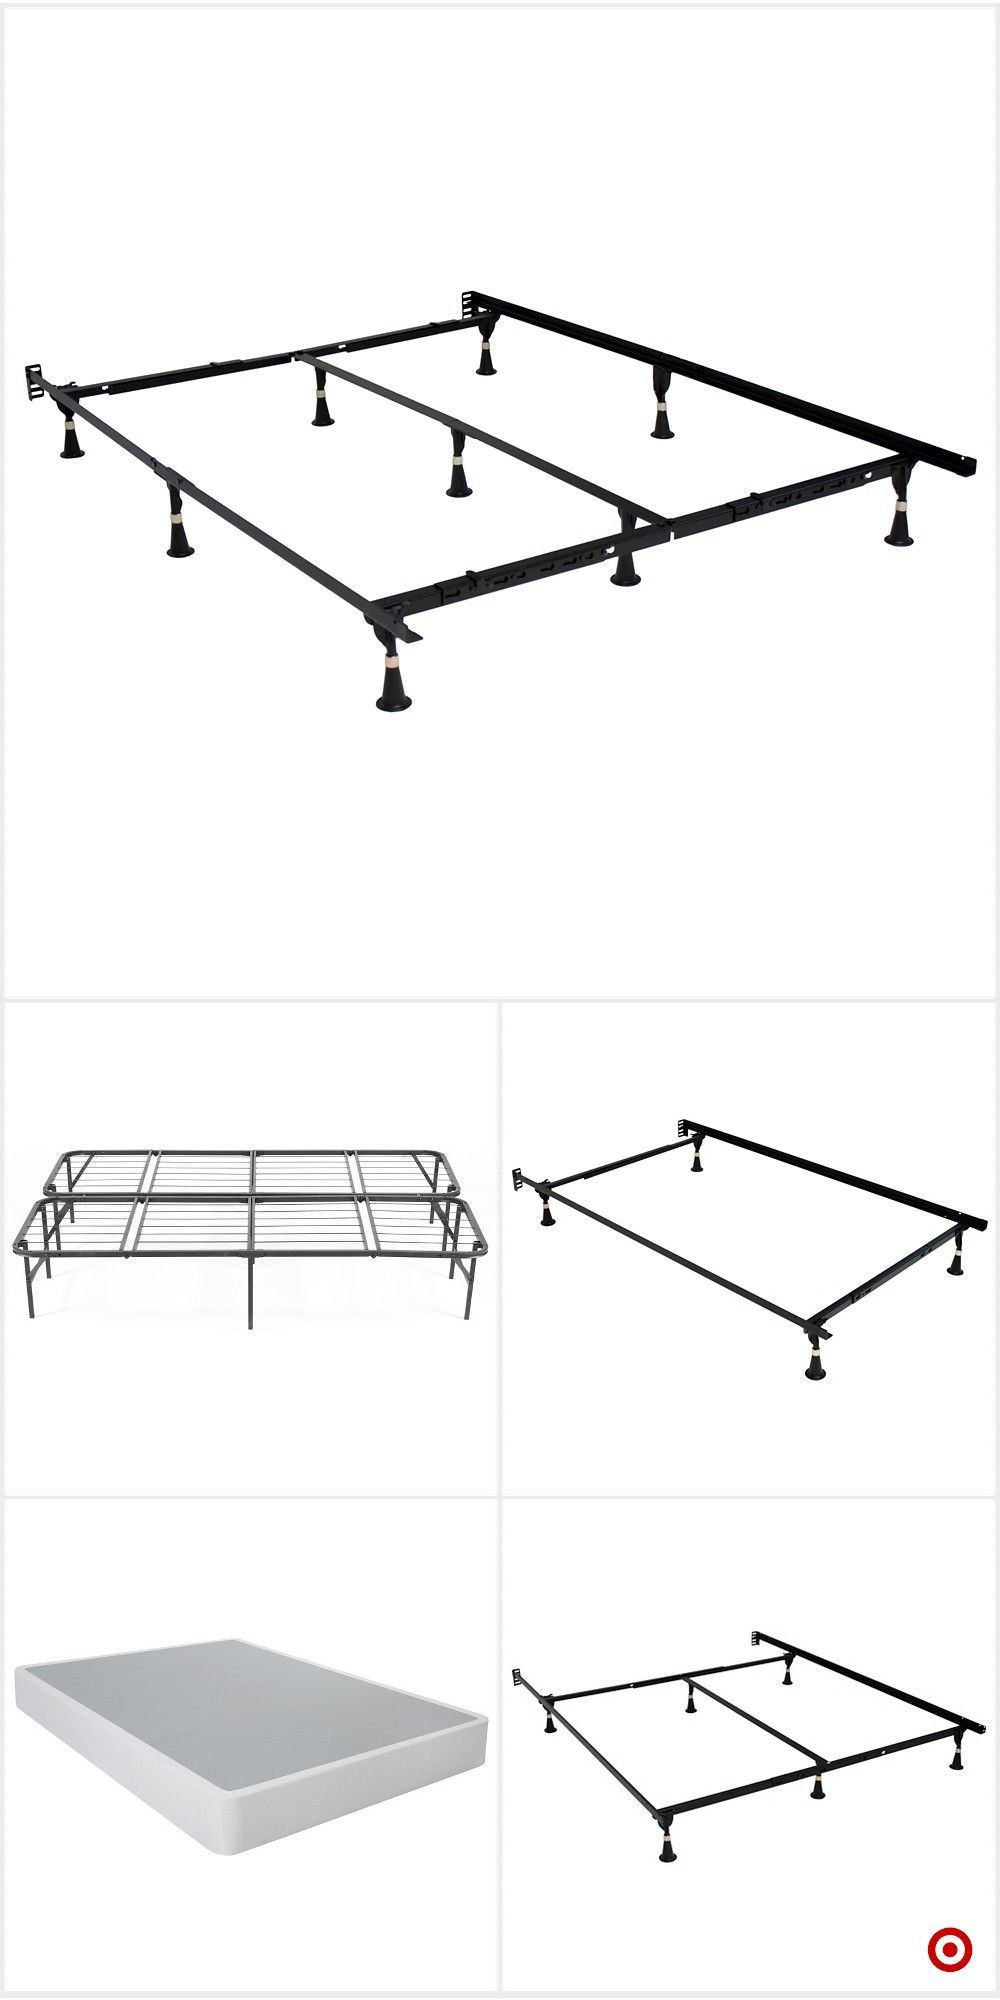 Luggage Rack Target Fascinating Shop Target For Bed Frame You Will Love At Great Low Pricesfree Review